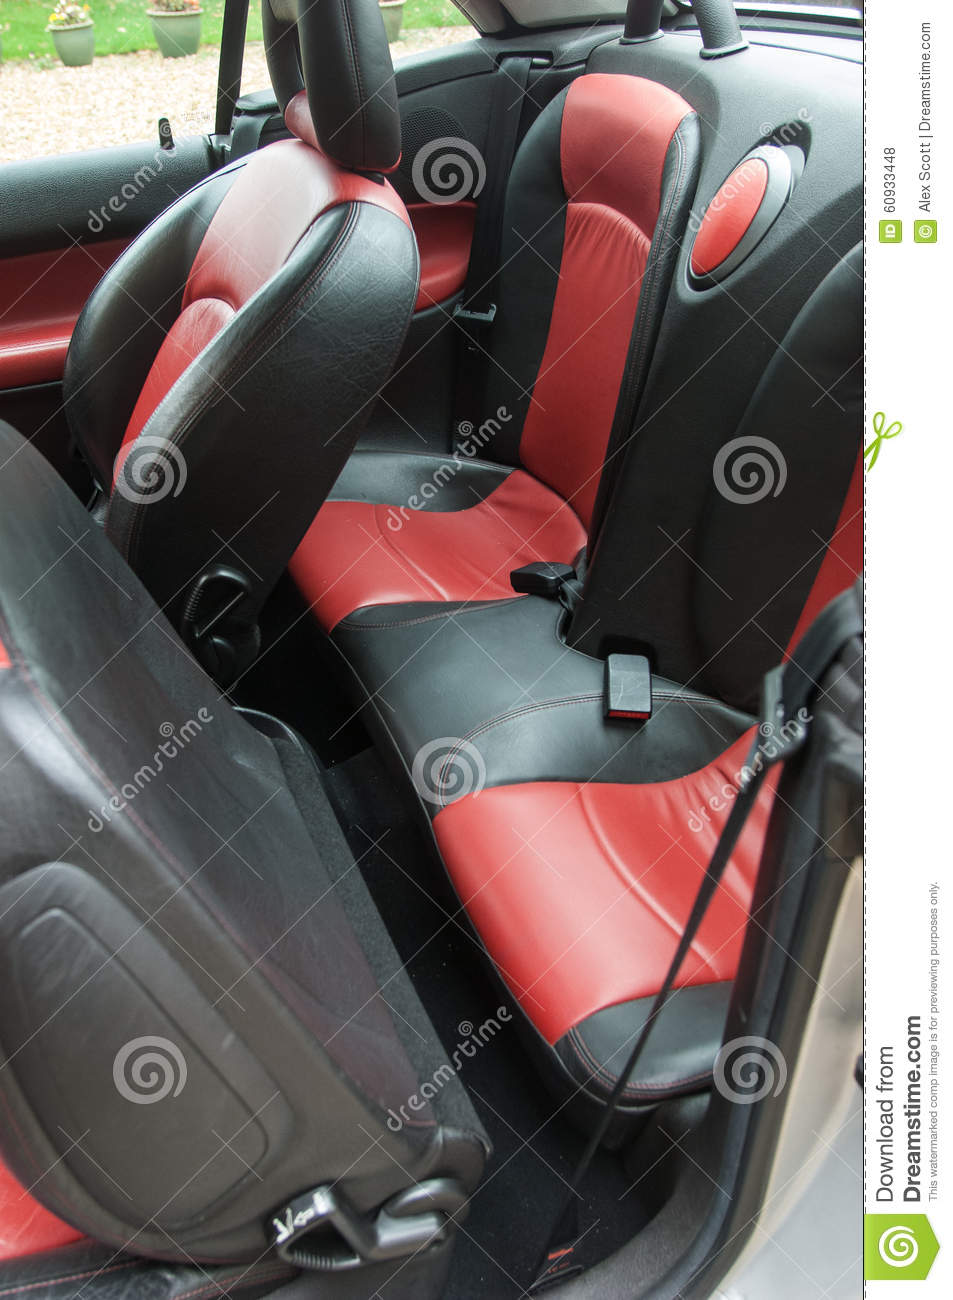 sports seats in a car stock photo image of track colour 60933448. Black Bedroom Furniture Sets. Home Design Ideas